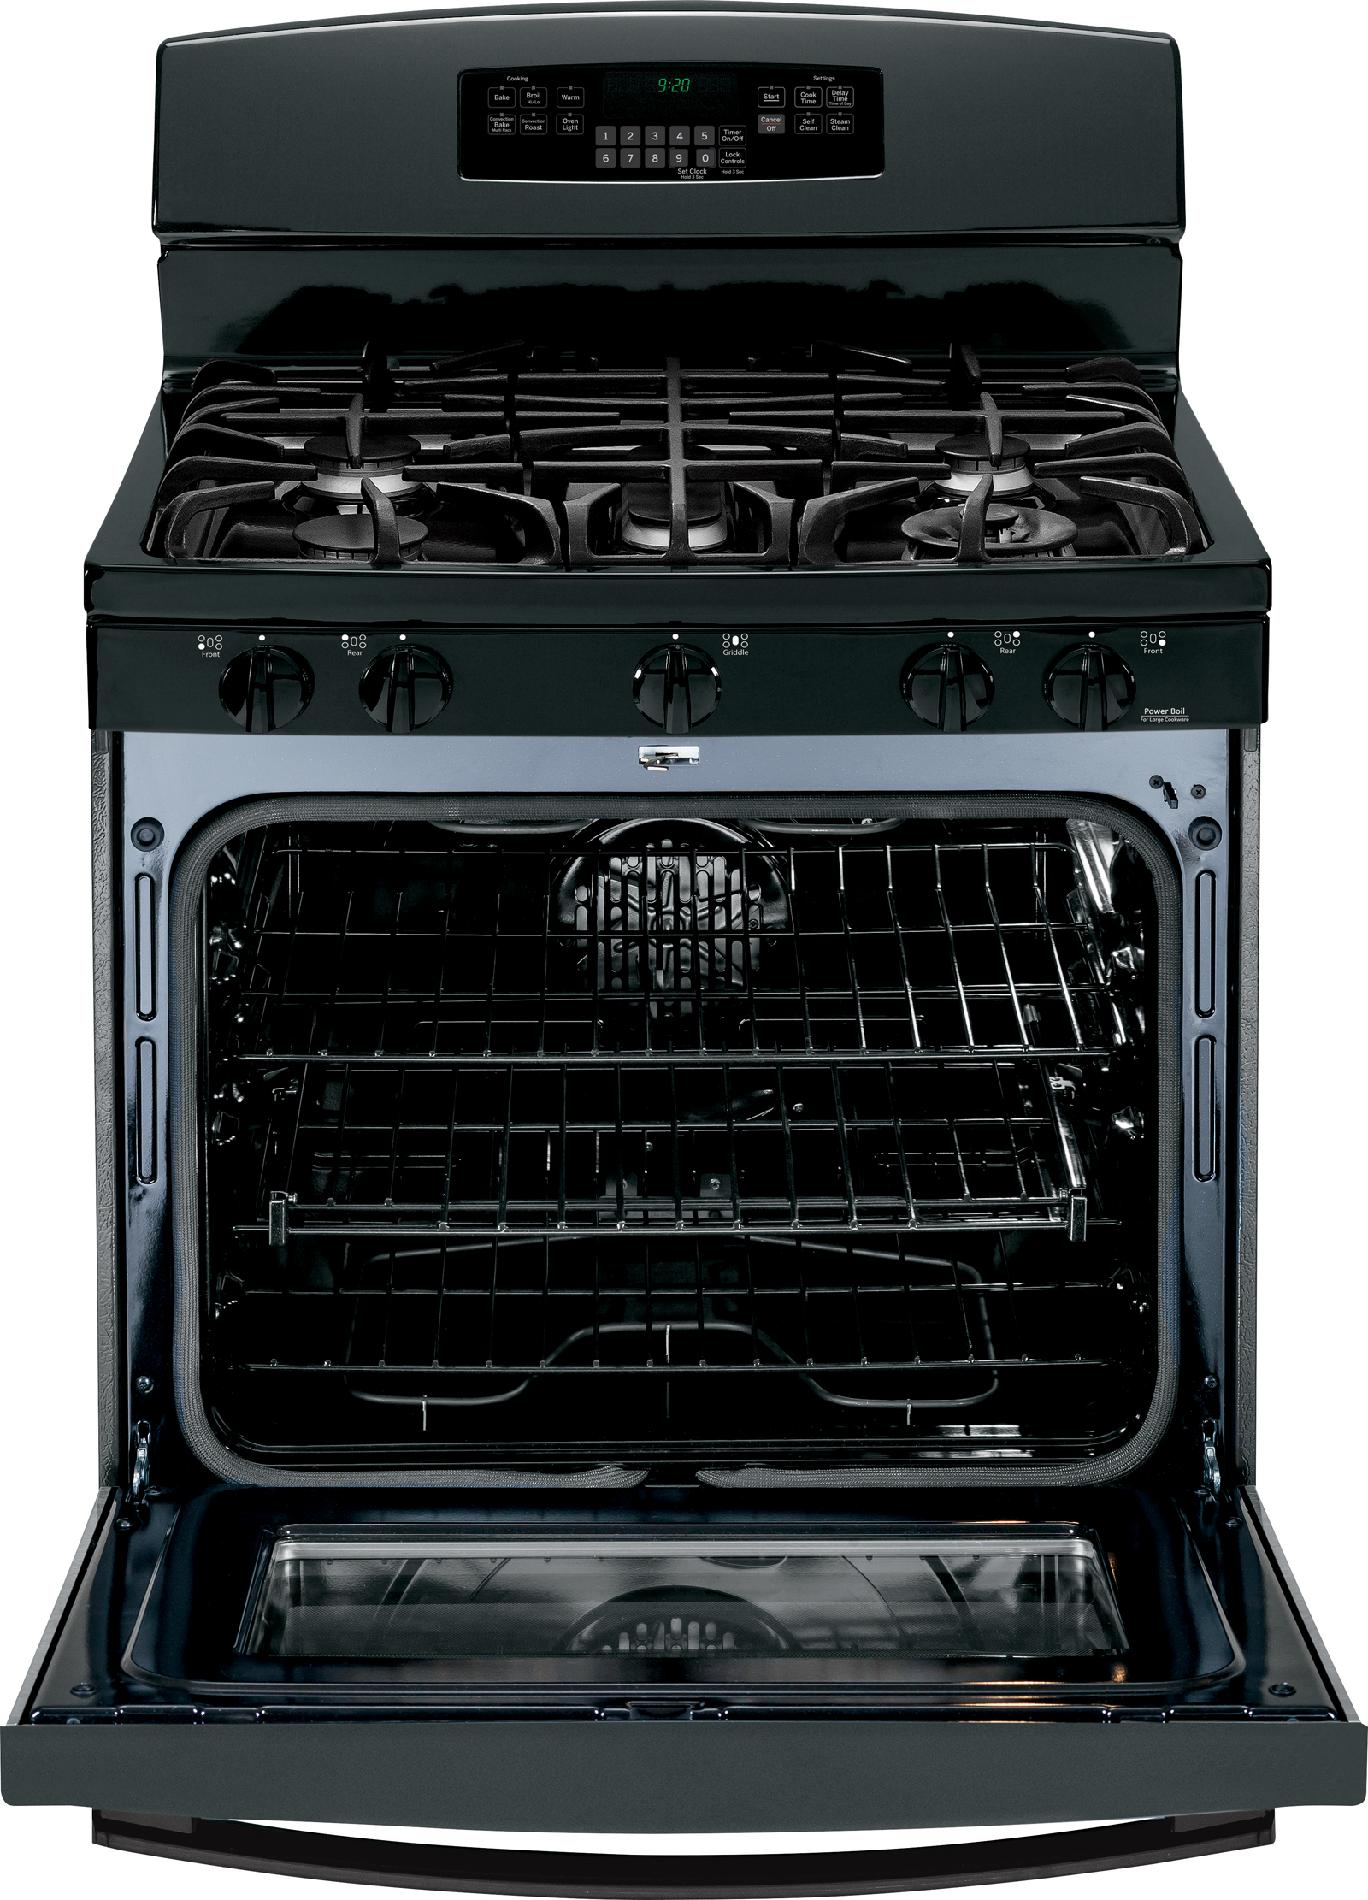 GE Profile 5.6 cu. ft. Gas Range w/ Convection - Black